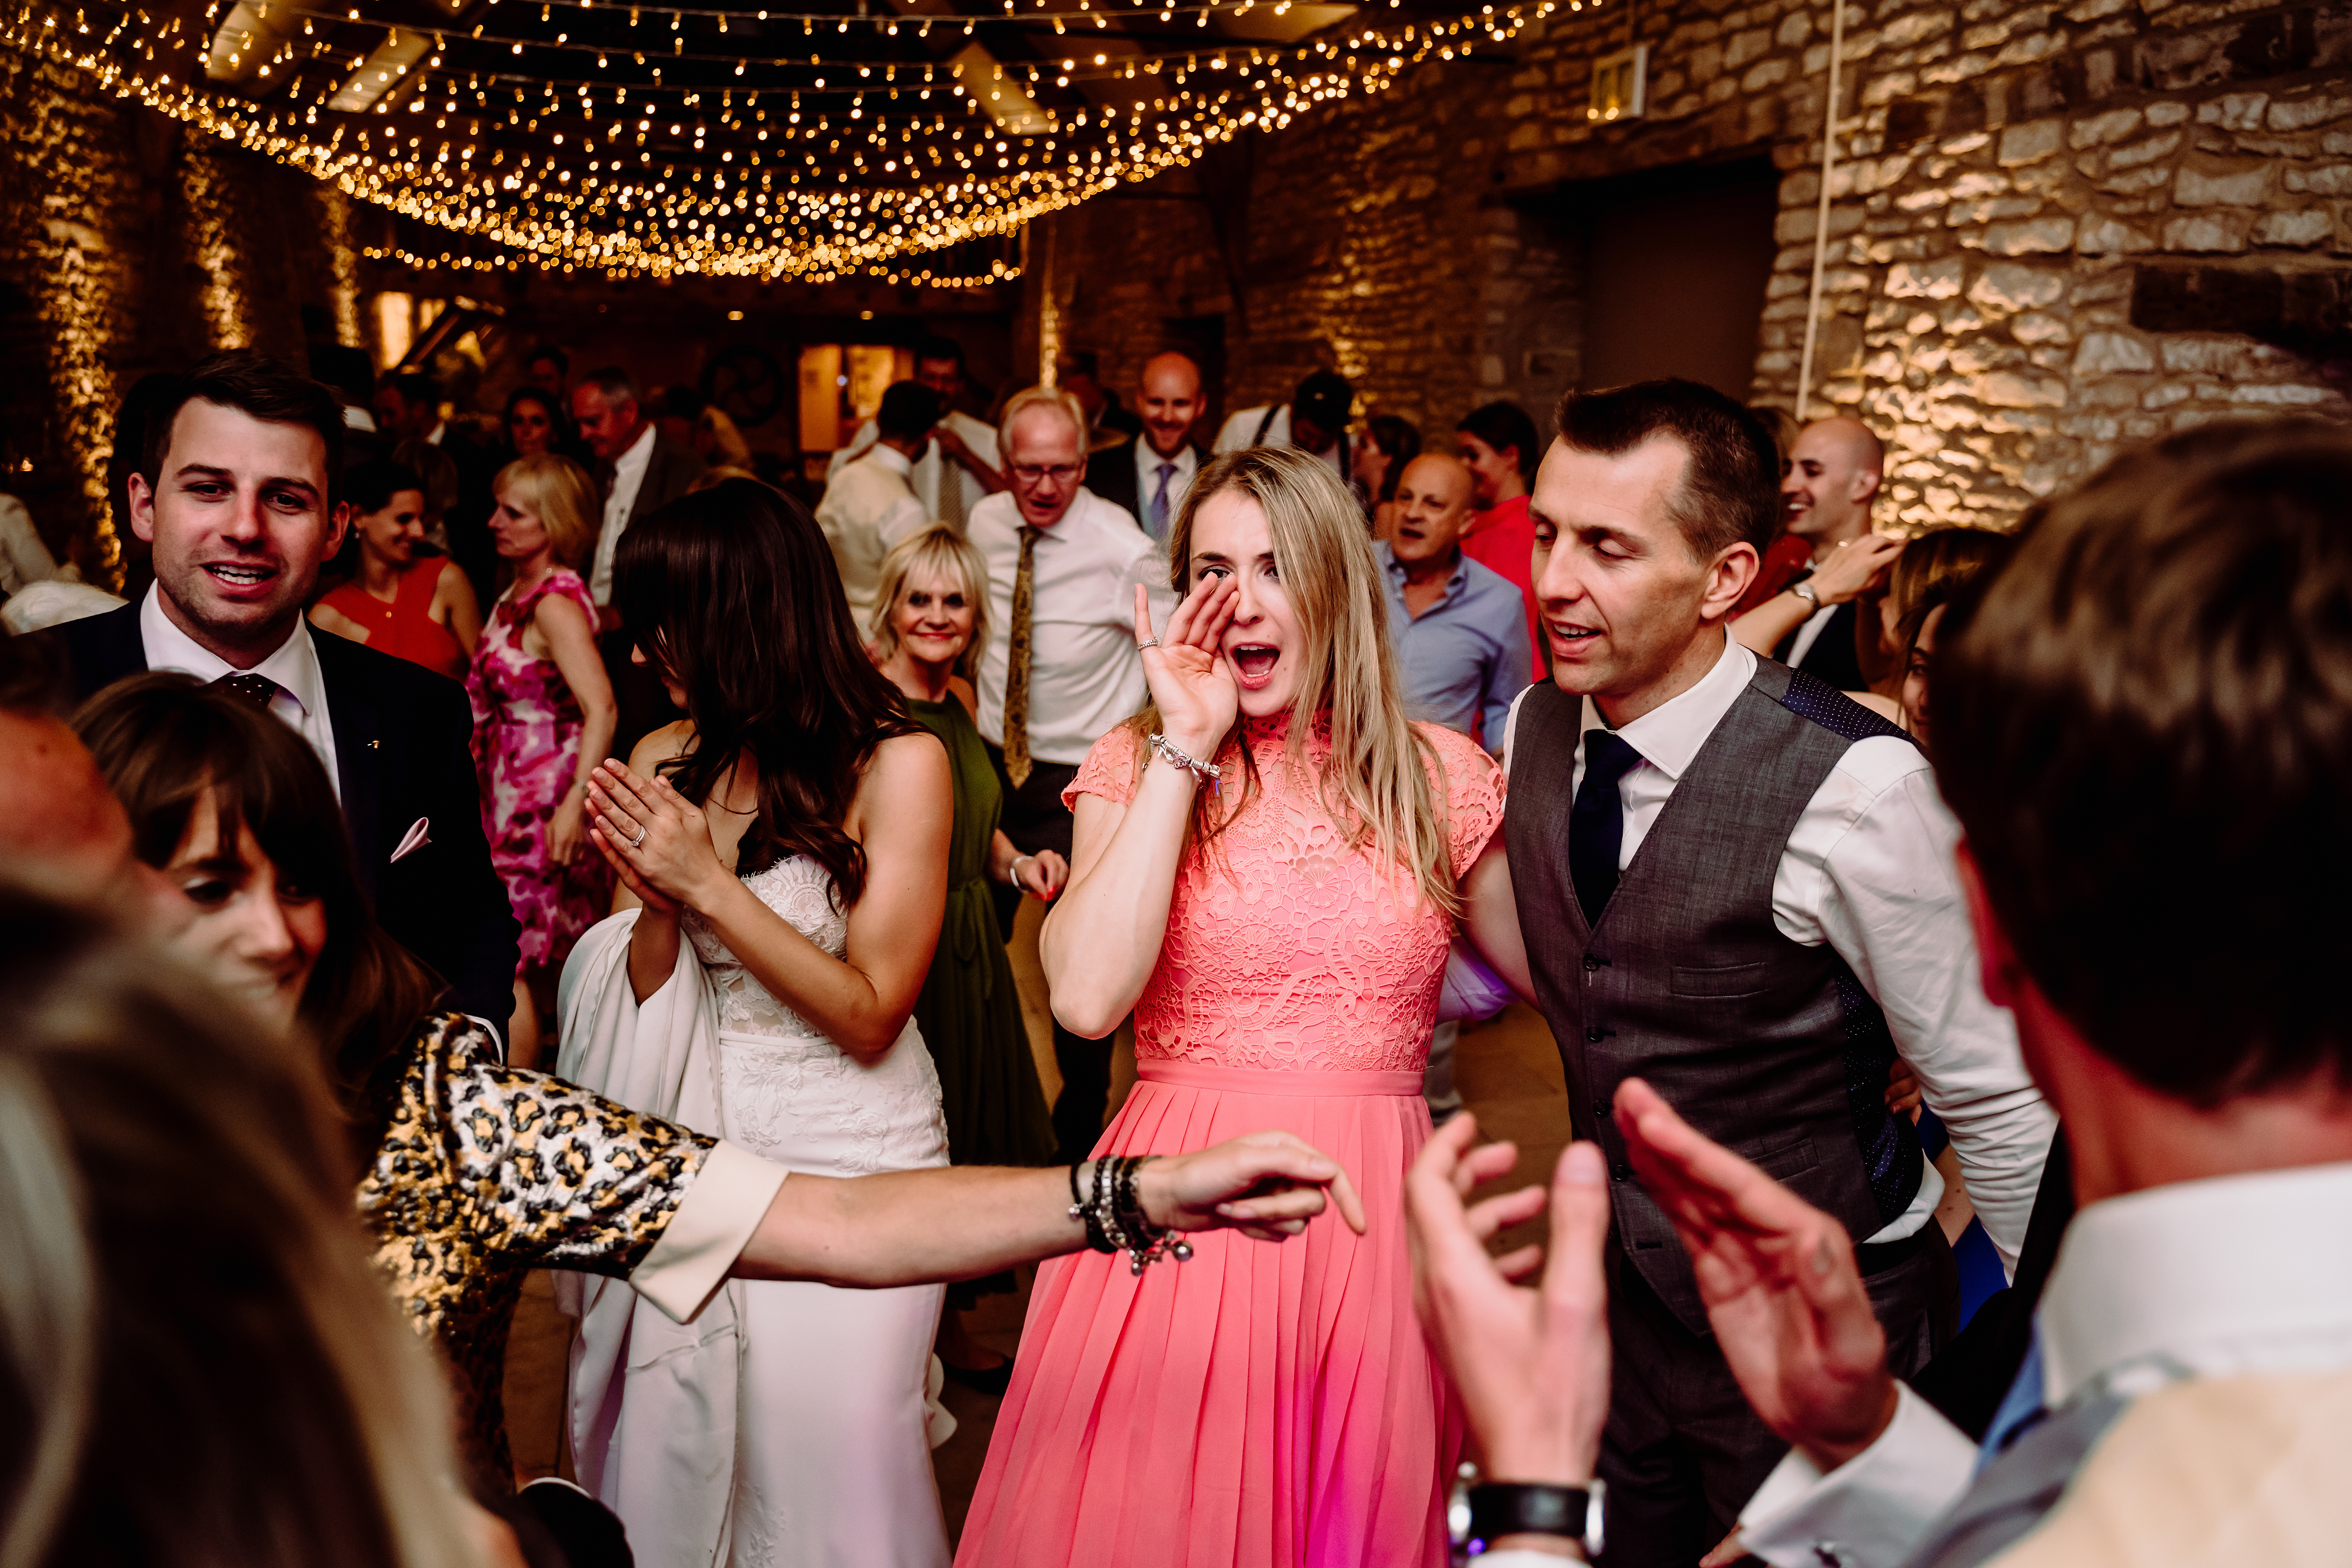 a funny shot from the evening of a wedding